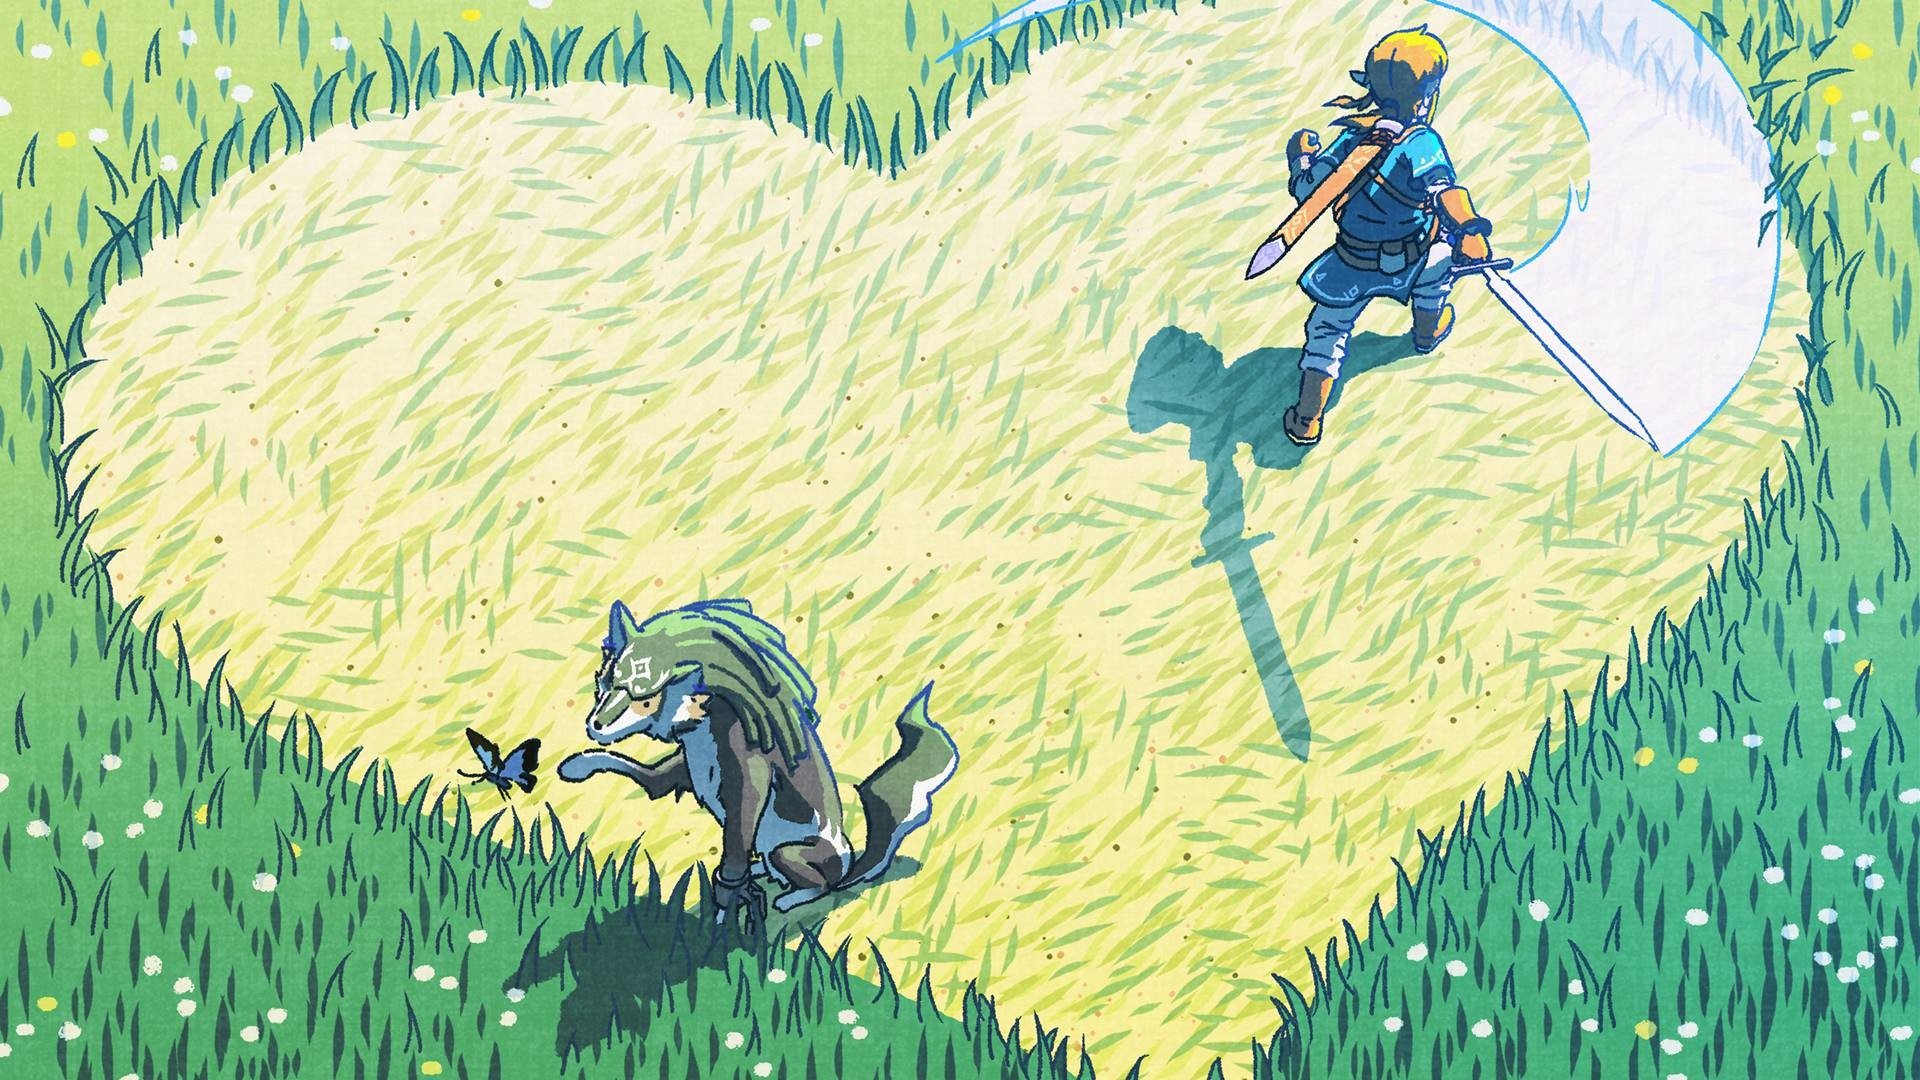 Res: 1920x1080, Image result for breath of the wild wallpaper